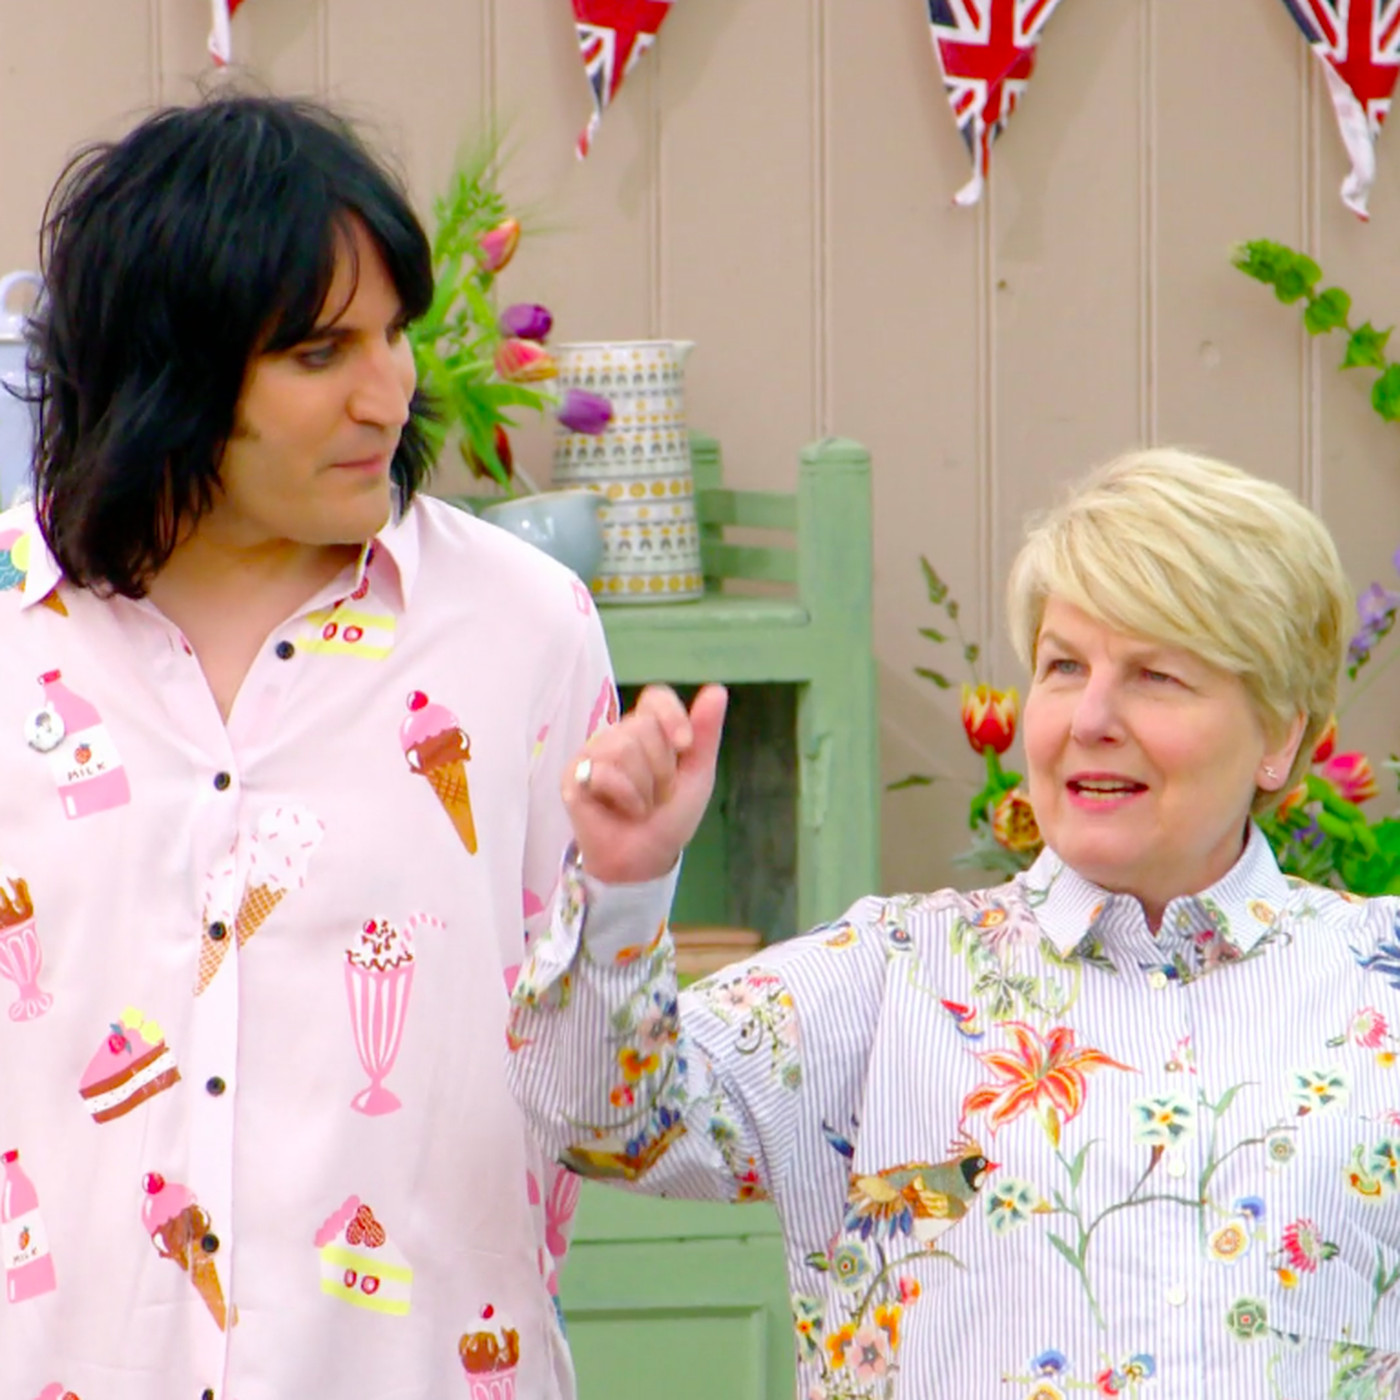 Who Are the Hosts of Great British Baking Show Season 5 on